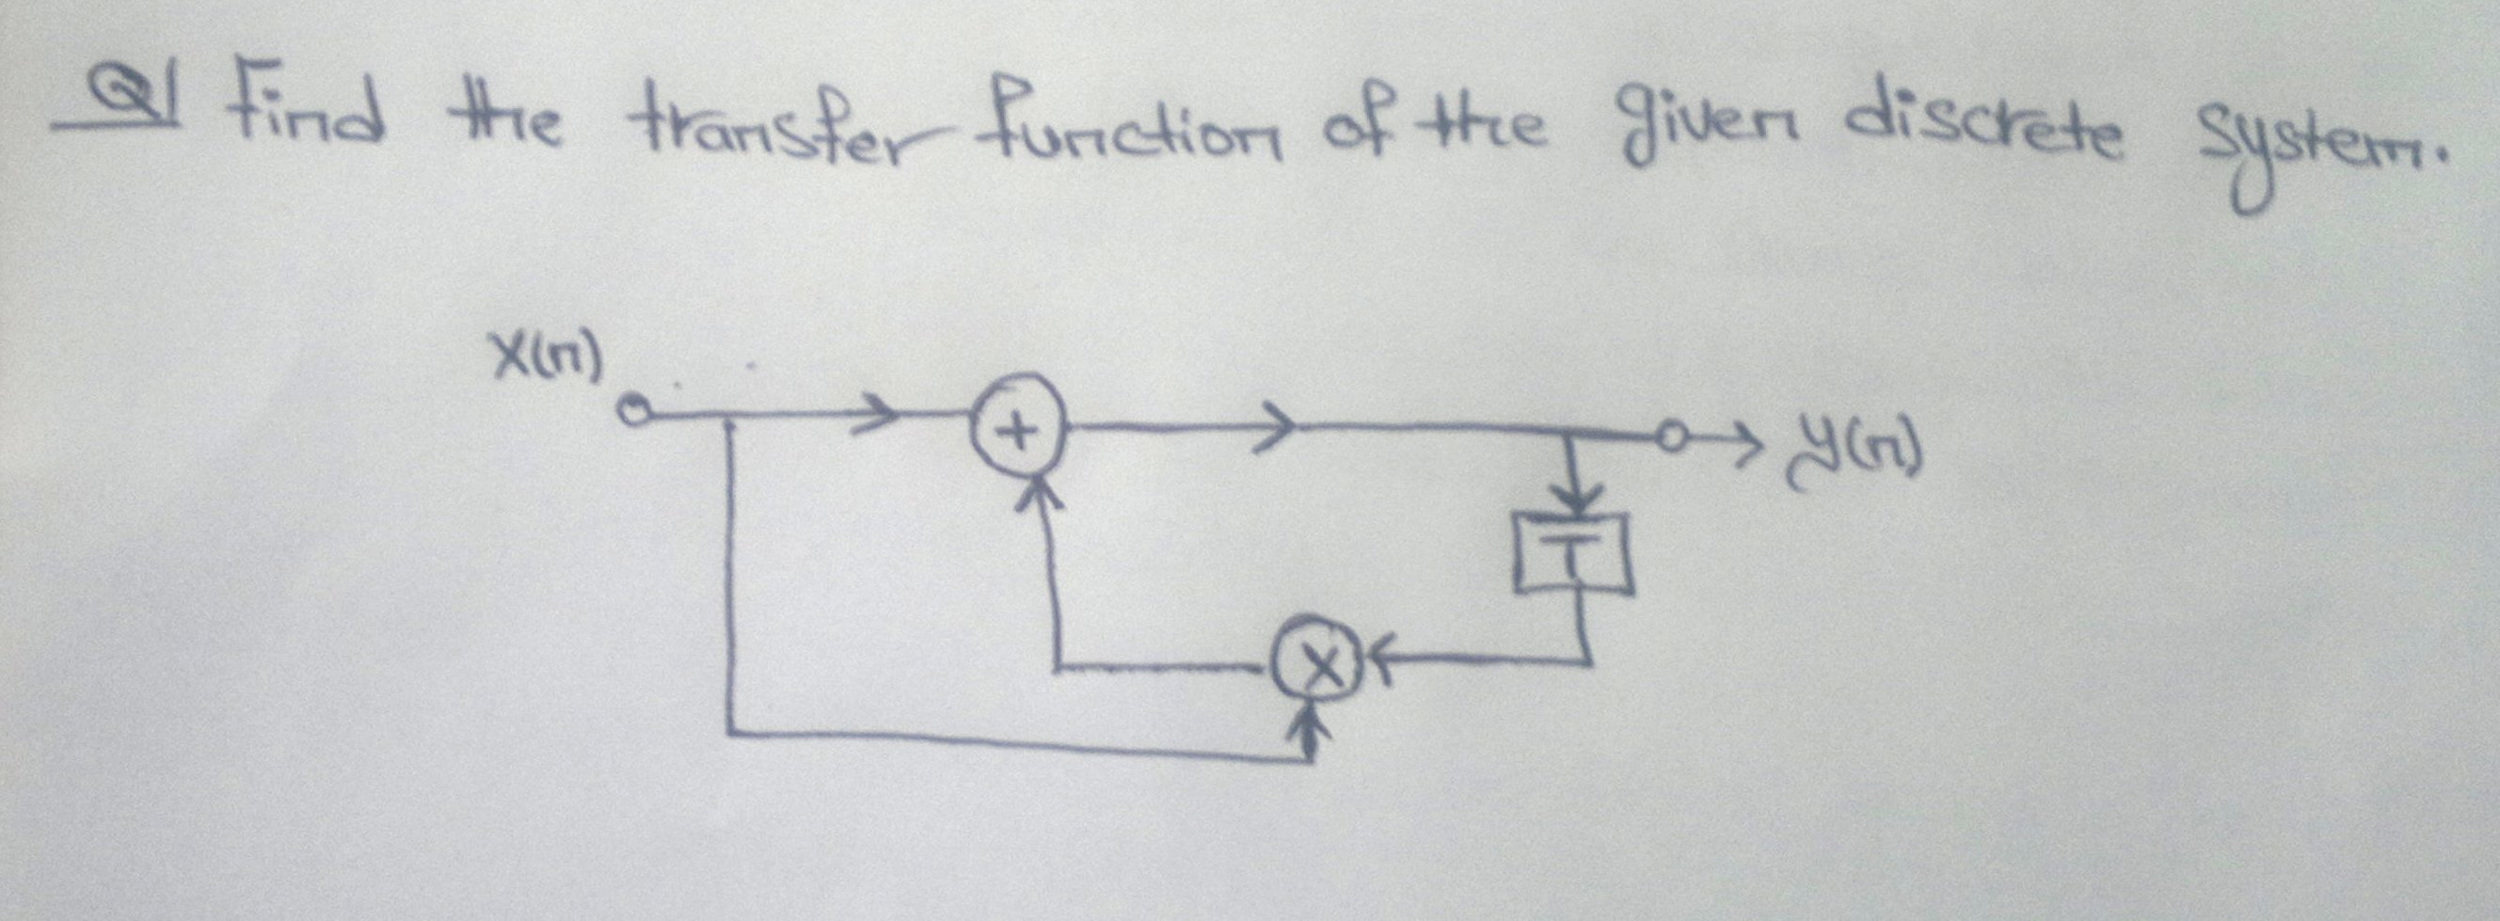 Find the transfer of the given discrete system.